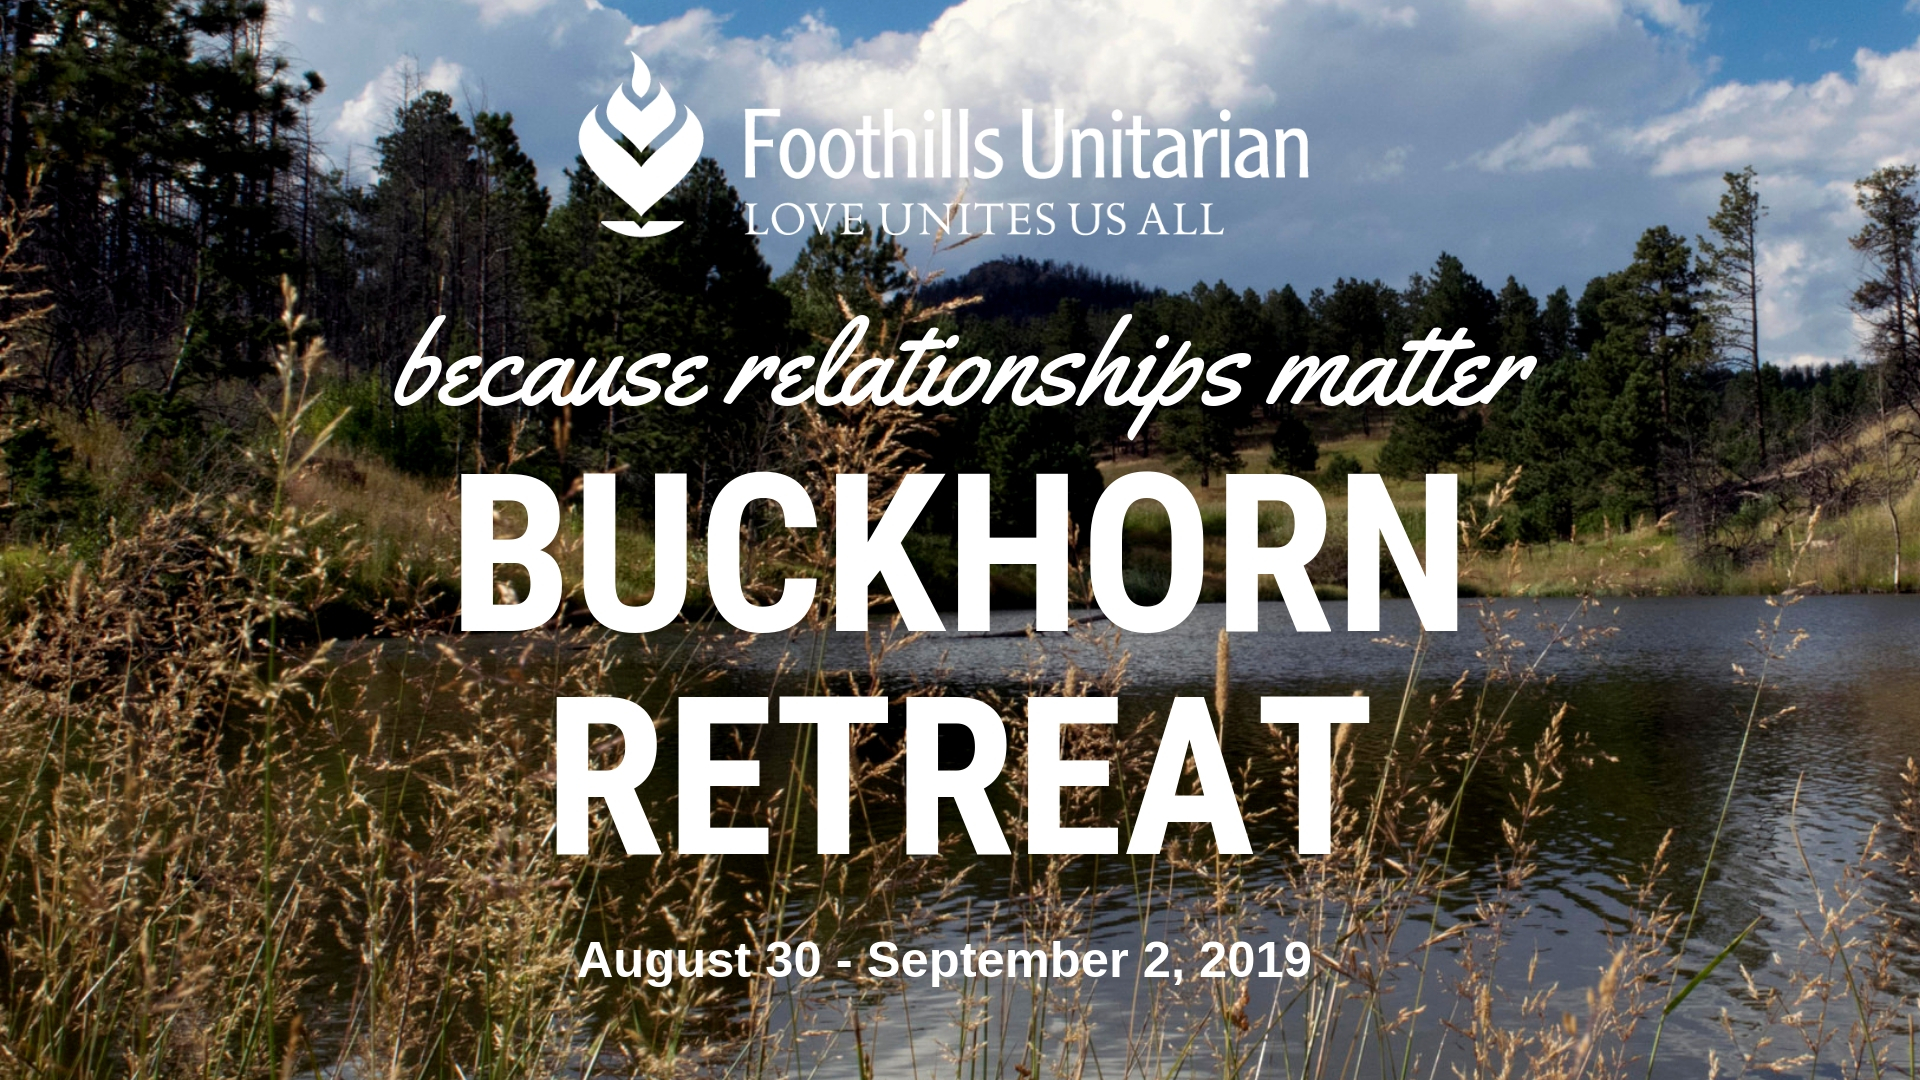 Join us at the Buckhorn Retreat